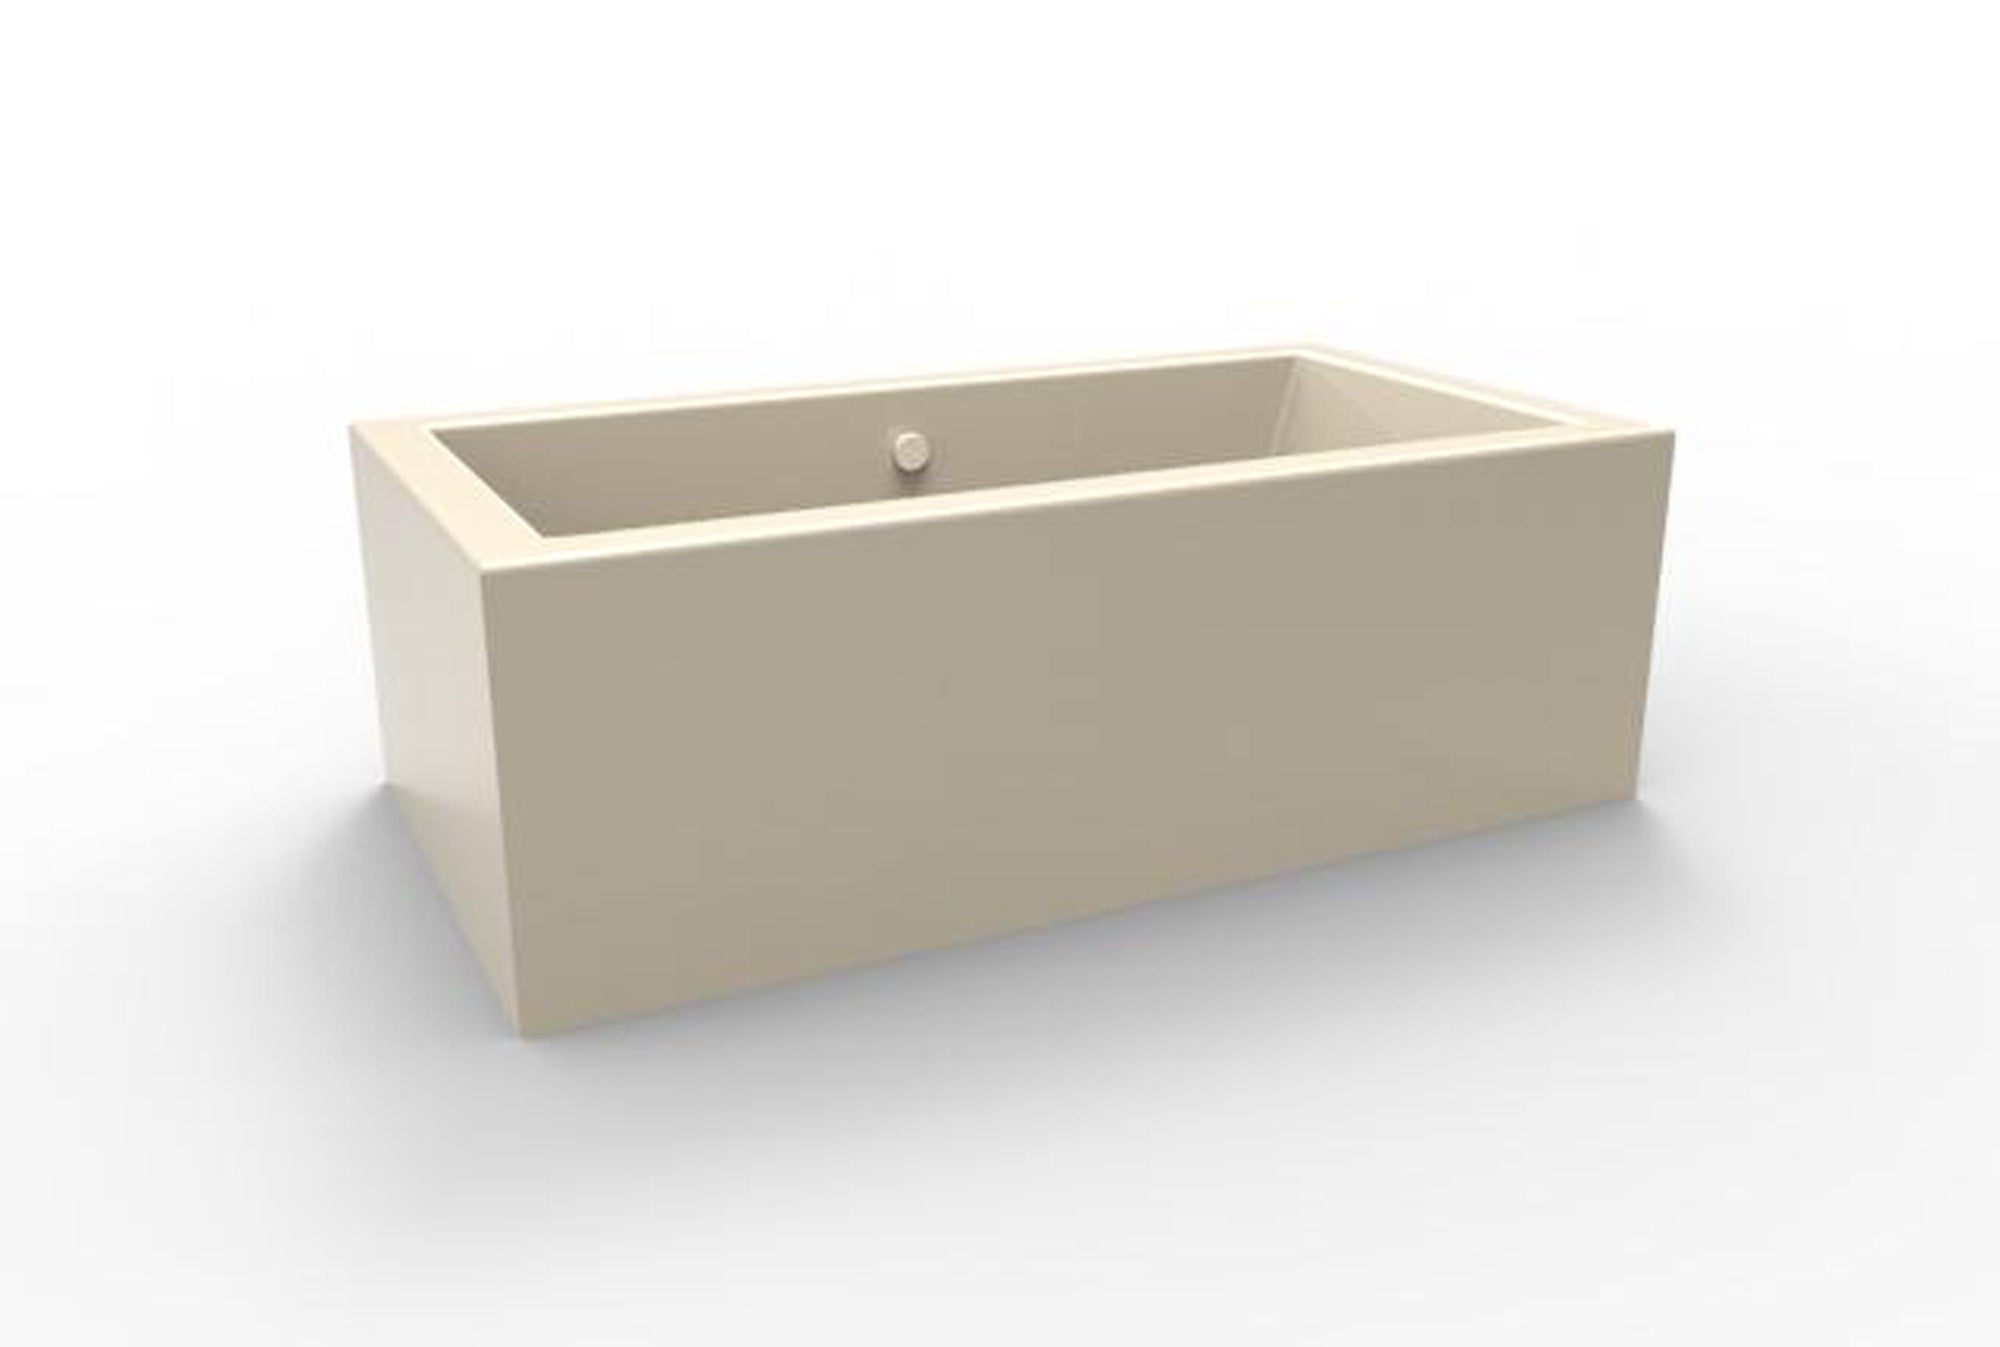 Hydro Systems Mch7238ato Chagall 72 X 38 Acrylic Soaking Tub Plumbing Overstock